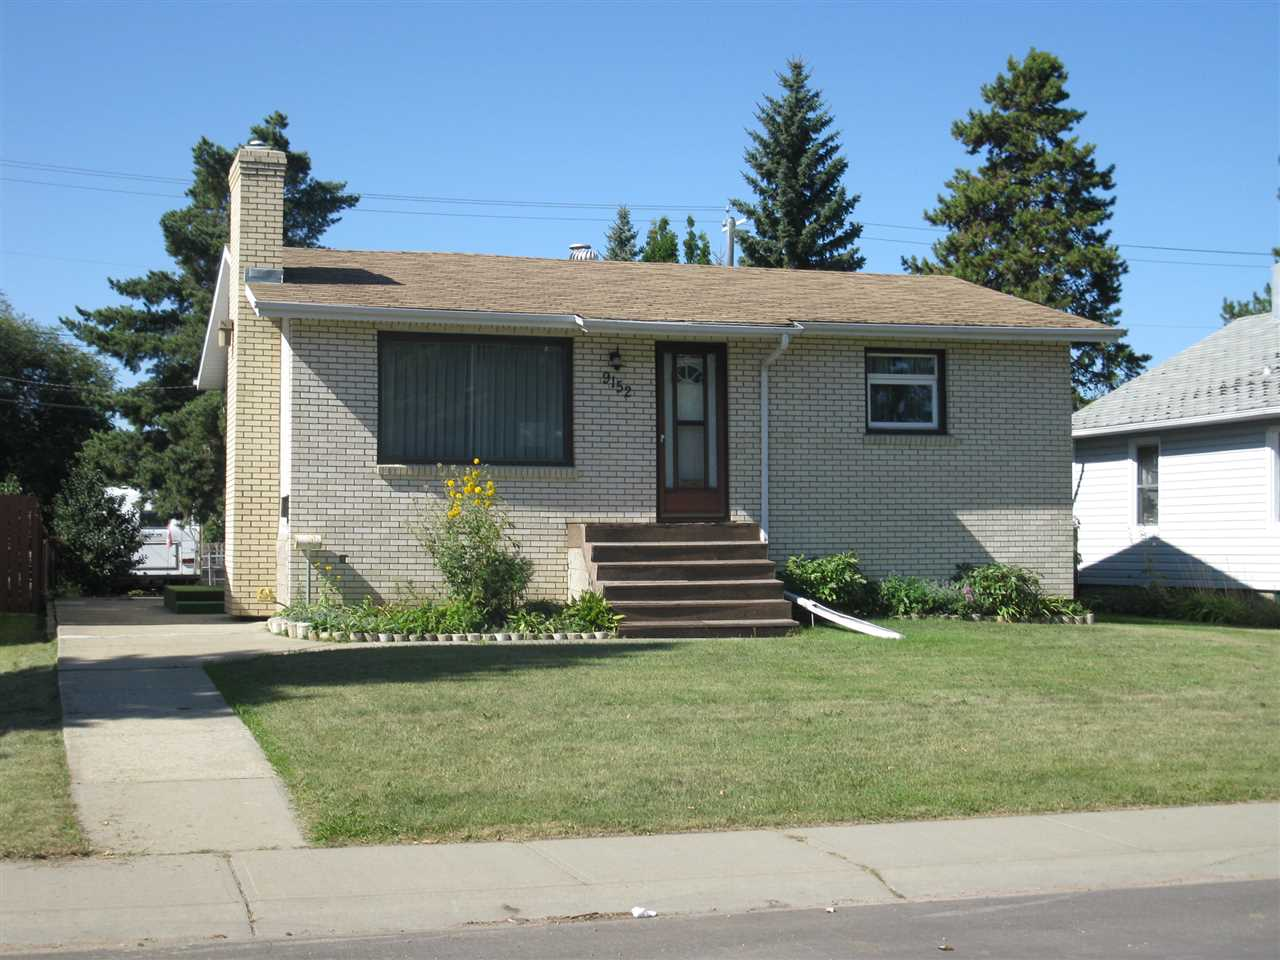 Main Photo: 9152 153 Street in Edmonton: Zone 22 House for sale : MLS® # E4080720